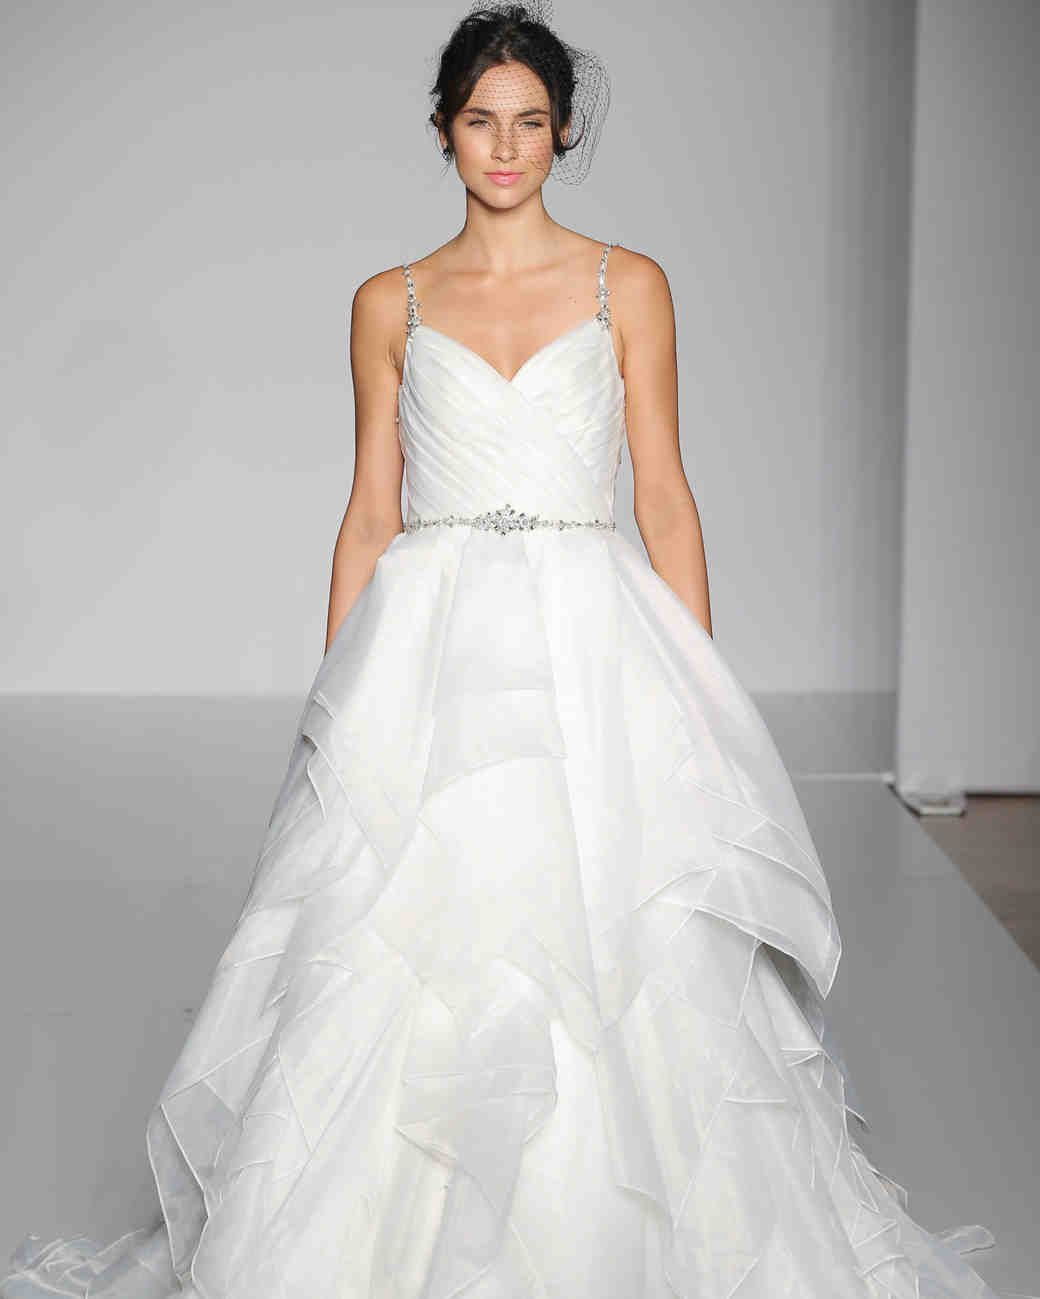 Maggie Sottero Fall 2017 Wedding Dresses: Maggie Sottero Spring 2017 Wedding Dress Collection